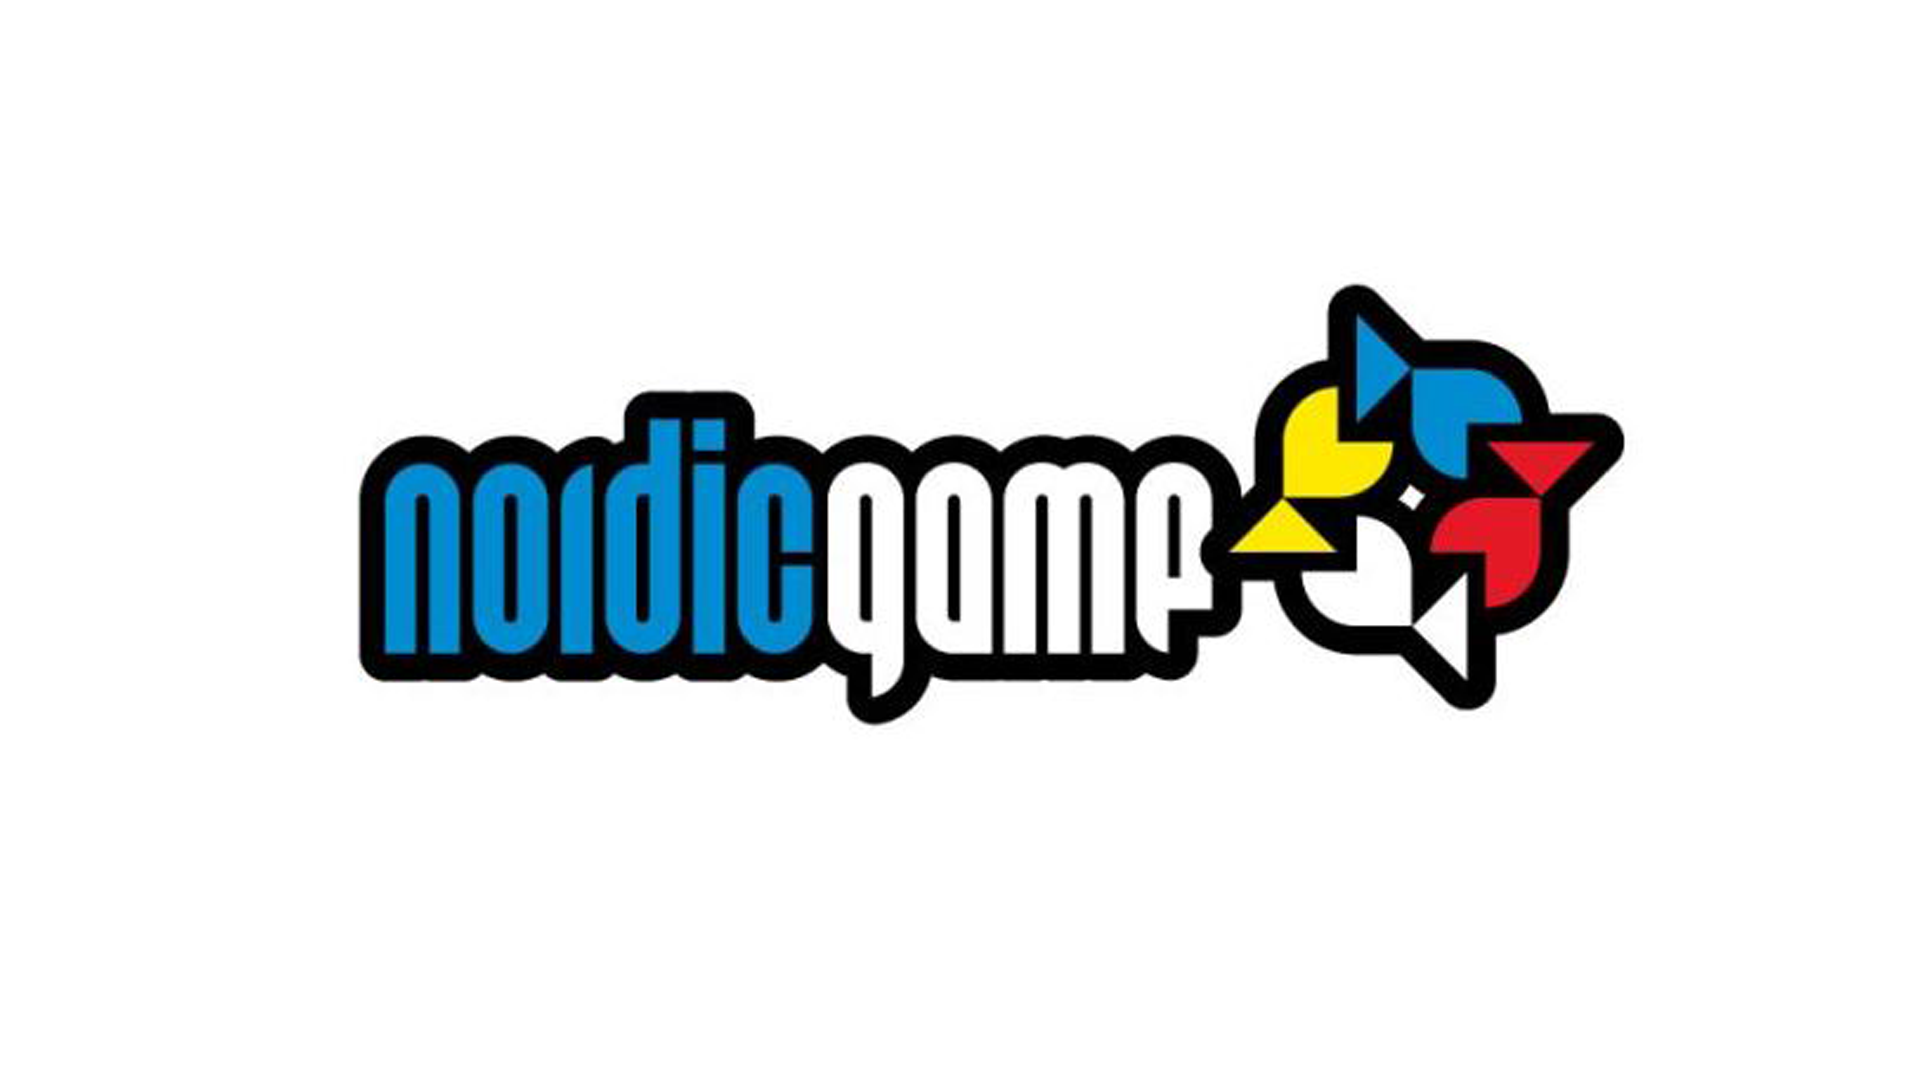 Nordic Game   Nordic Game is a video game conference held annually in Malmö, Sweden. The conference hosts lectures from the computer gaming industry and serves as a company-dating venue where developers and marketers meet.